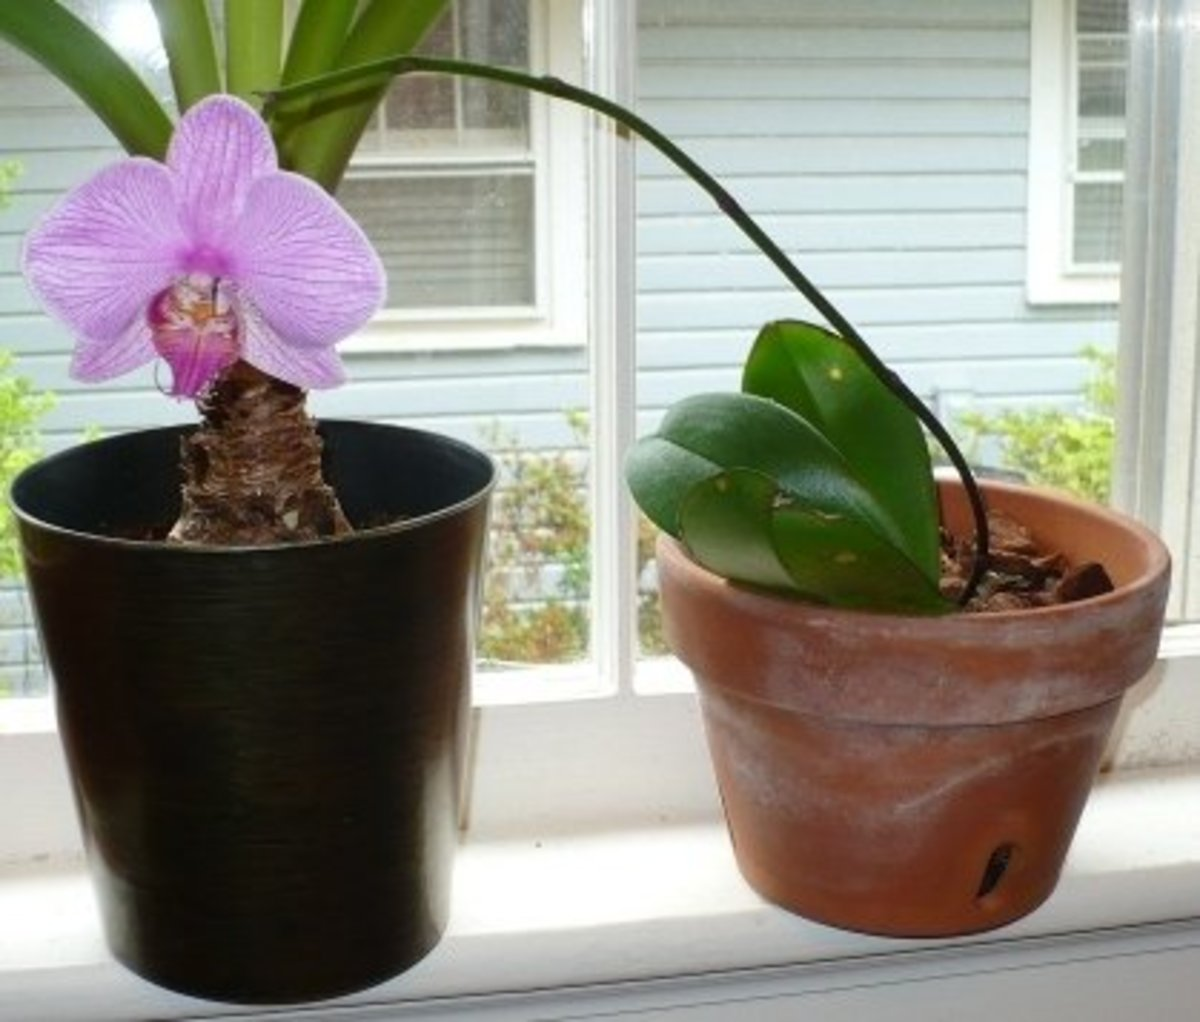 Caring for Phalaenopsis Orchids, for the Absolute Beginner or the Hopelessly Confused